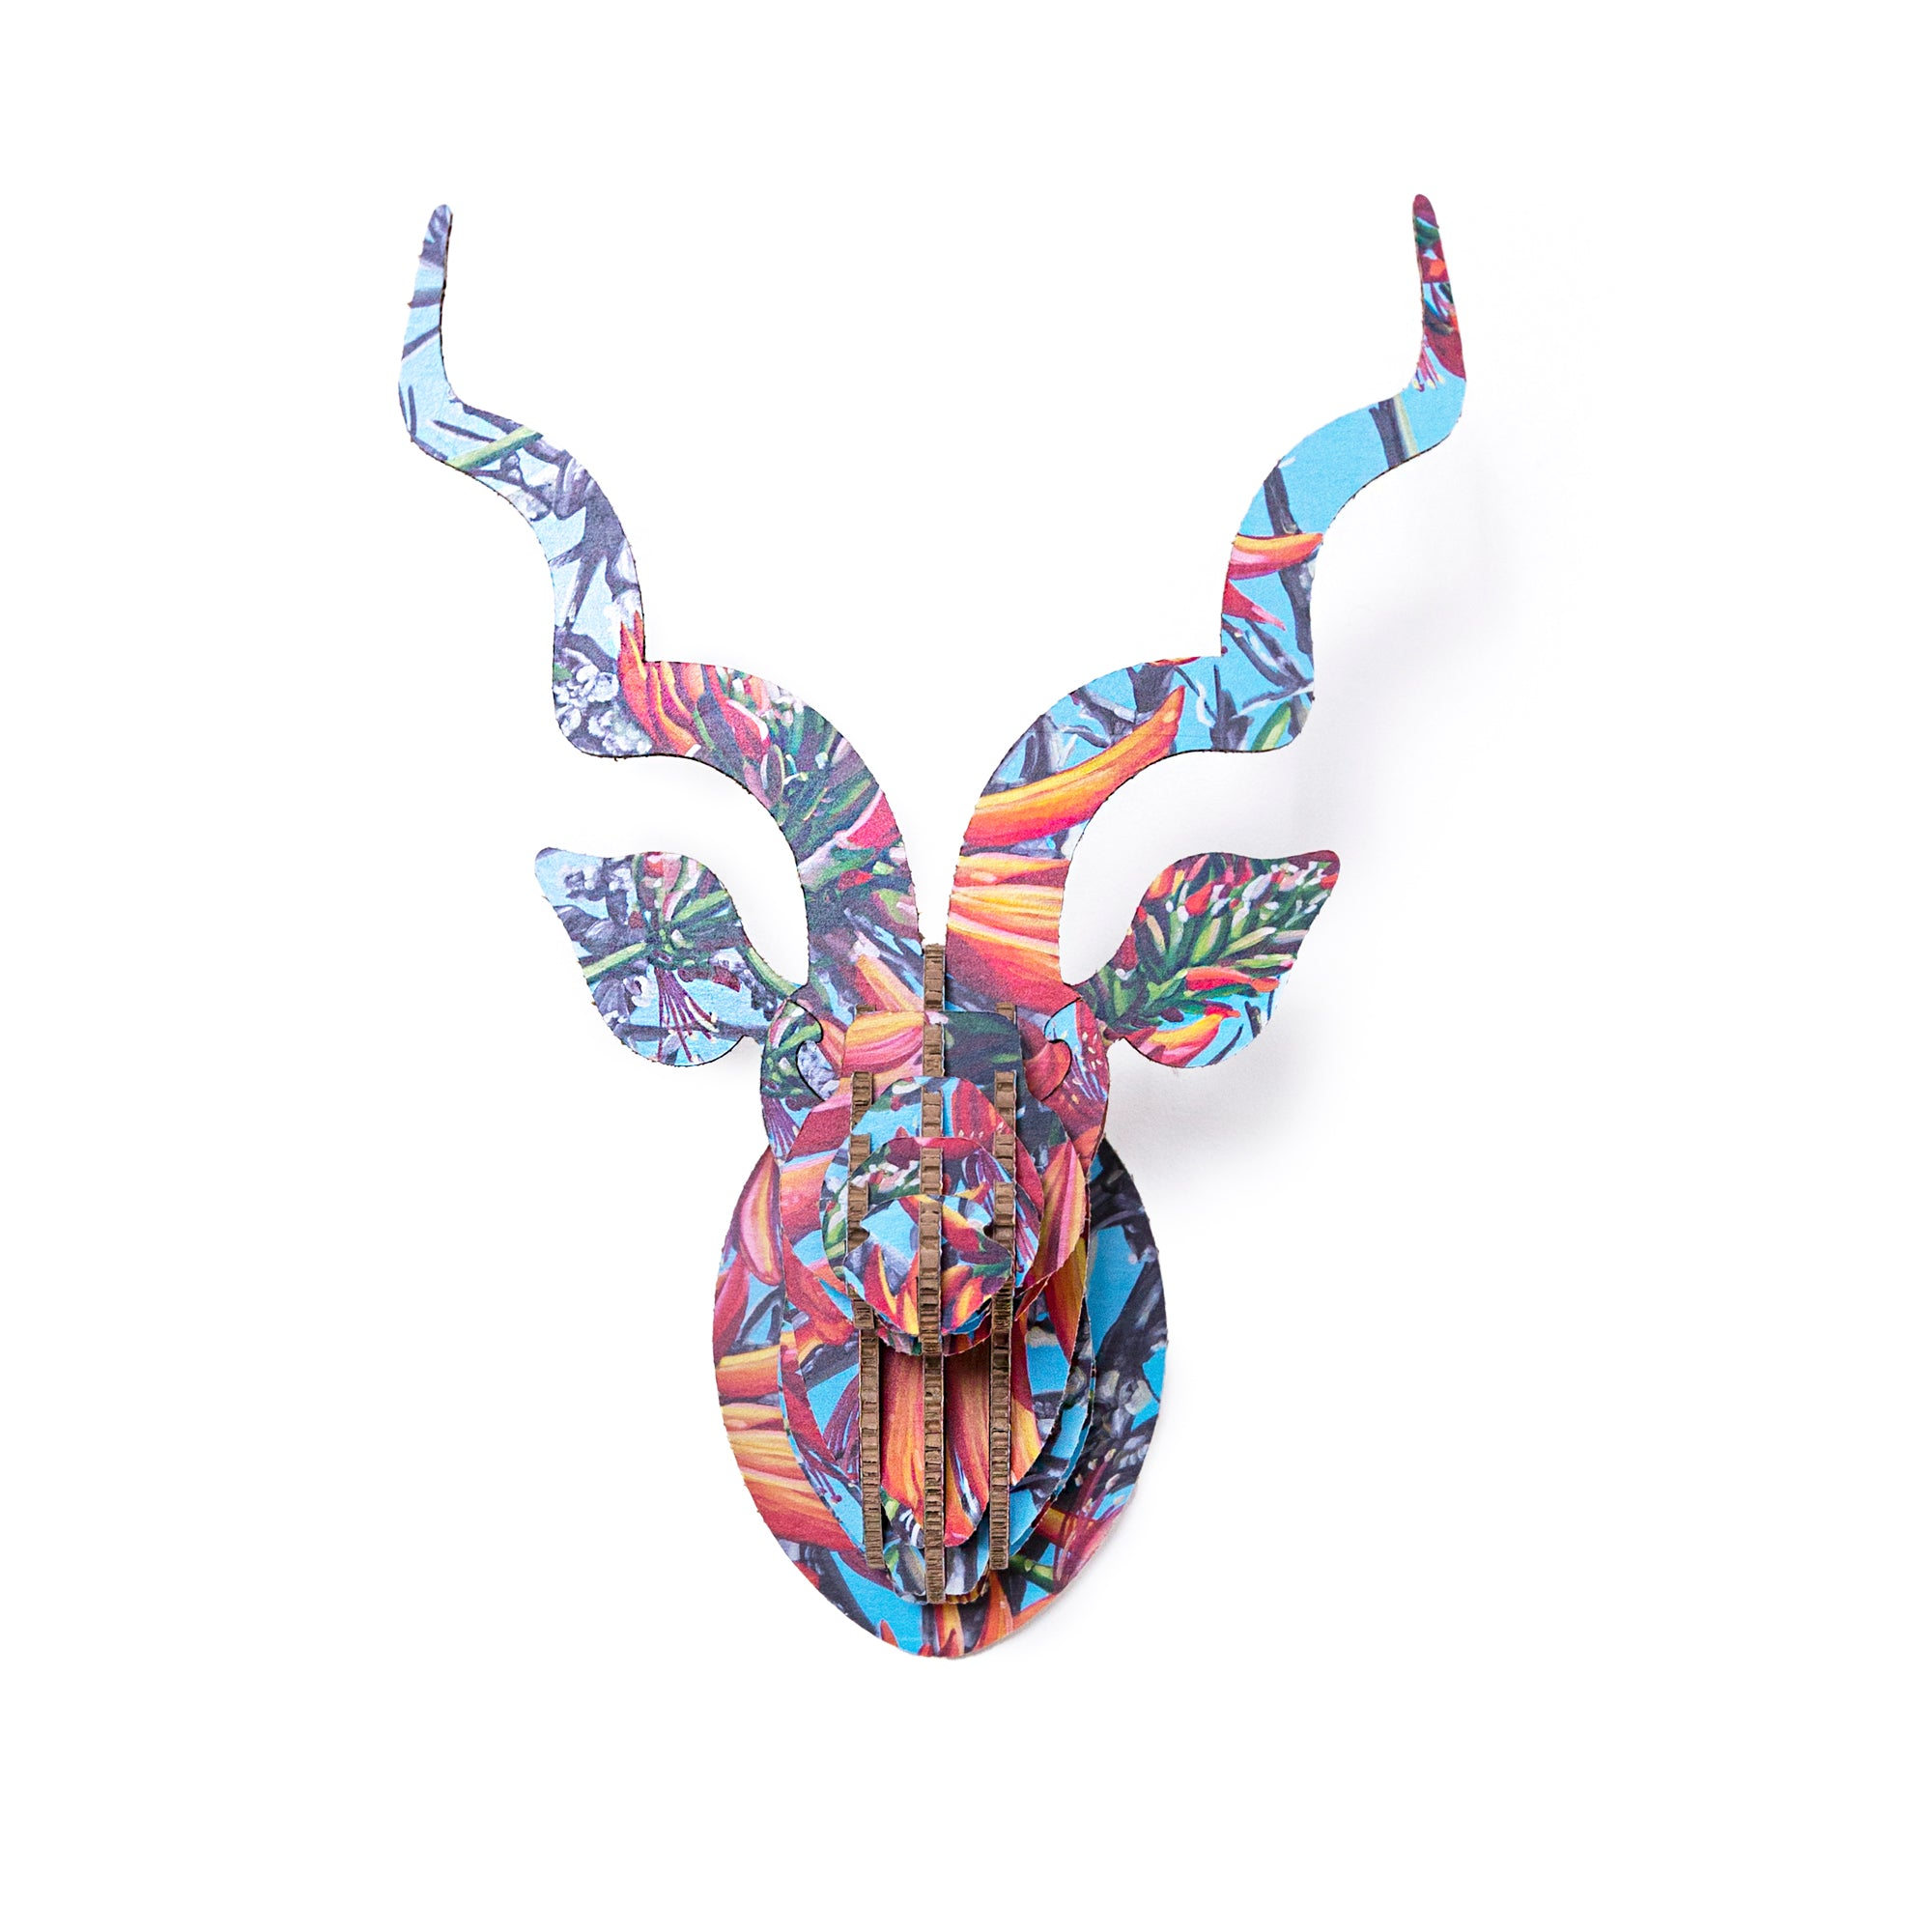 Head On Design Coral Tree kudu head Claudia Gurwitz print